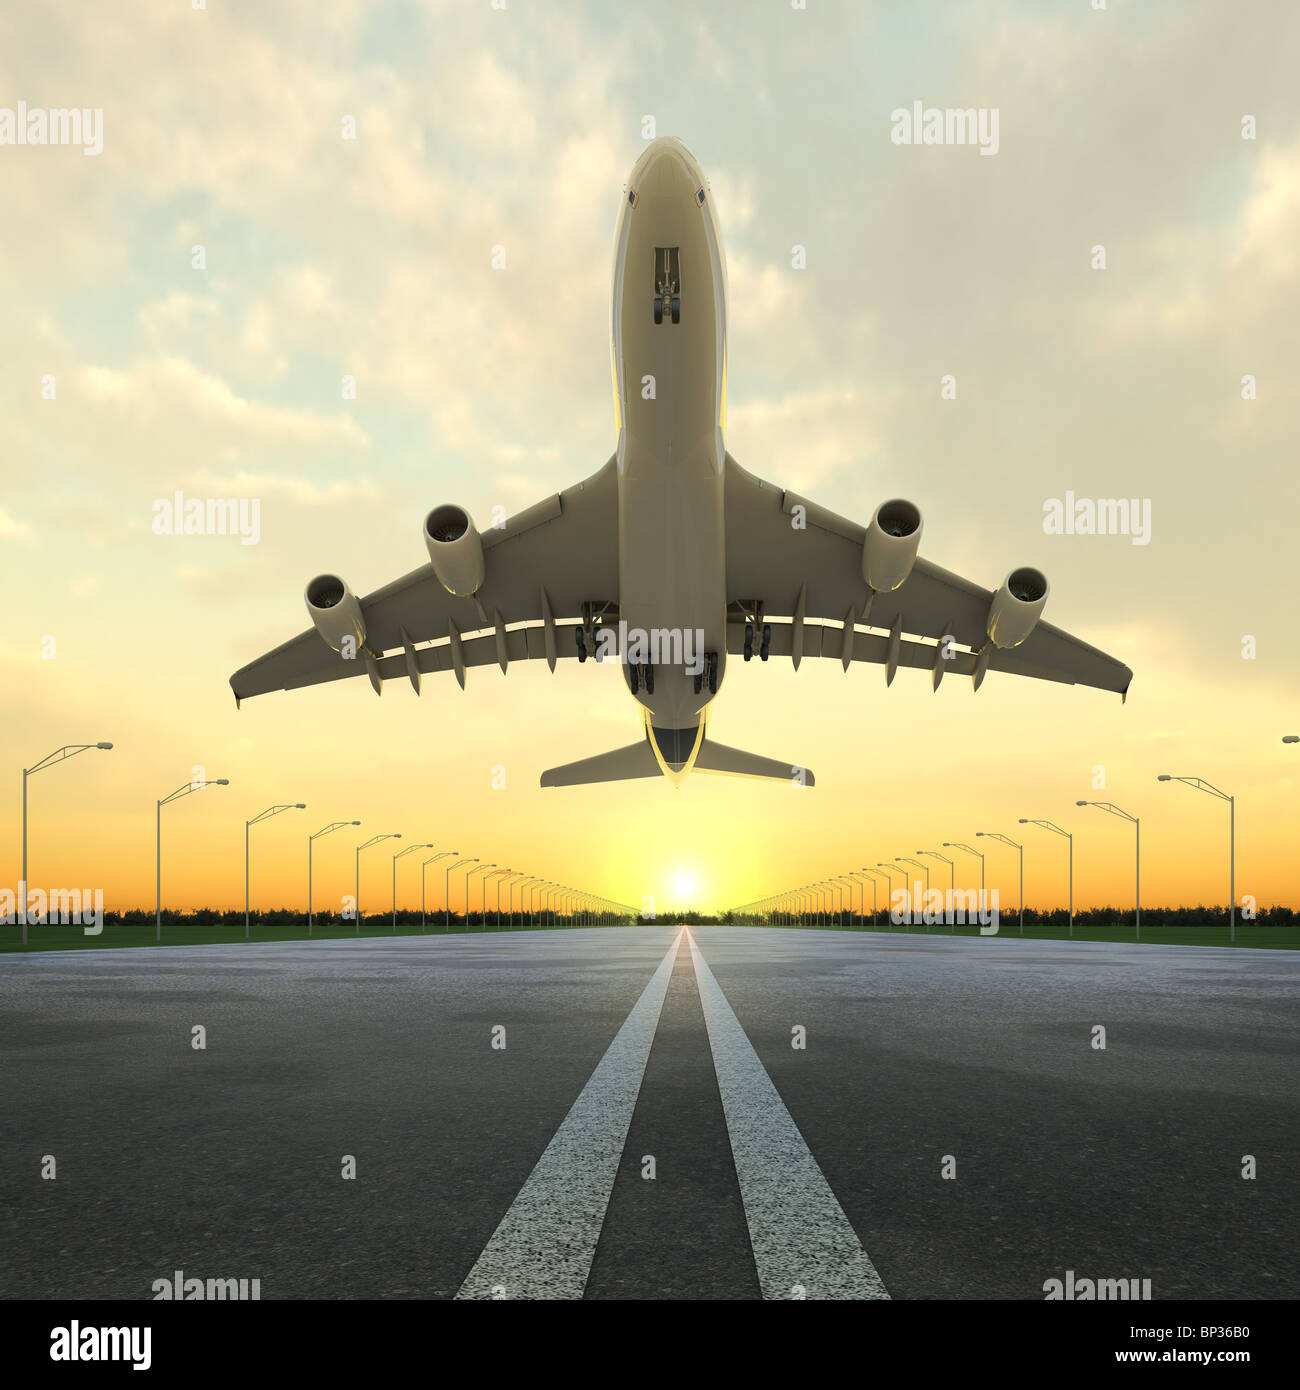 airplane at takeoff seen from the bottom in the airport landing strip at sunset. - Stock Image